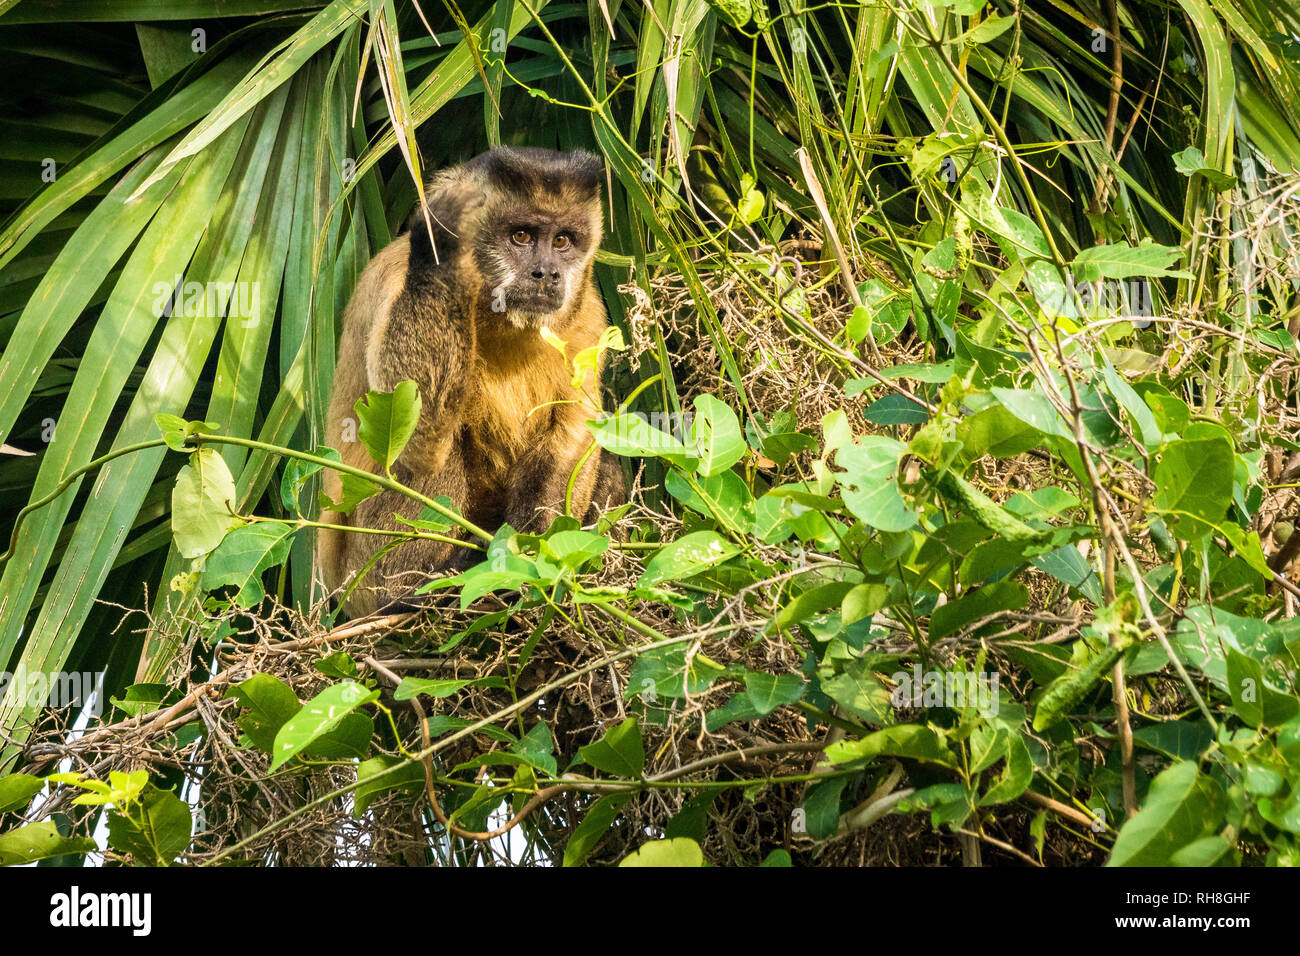 Capuchin monkey in palm tree in the Brazilian Pantanal Stock Photo